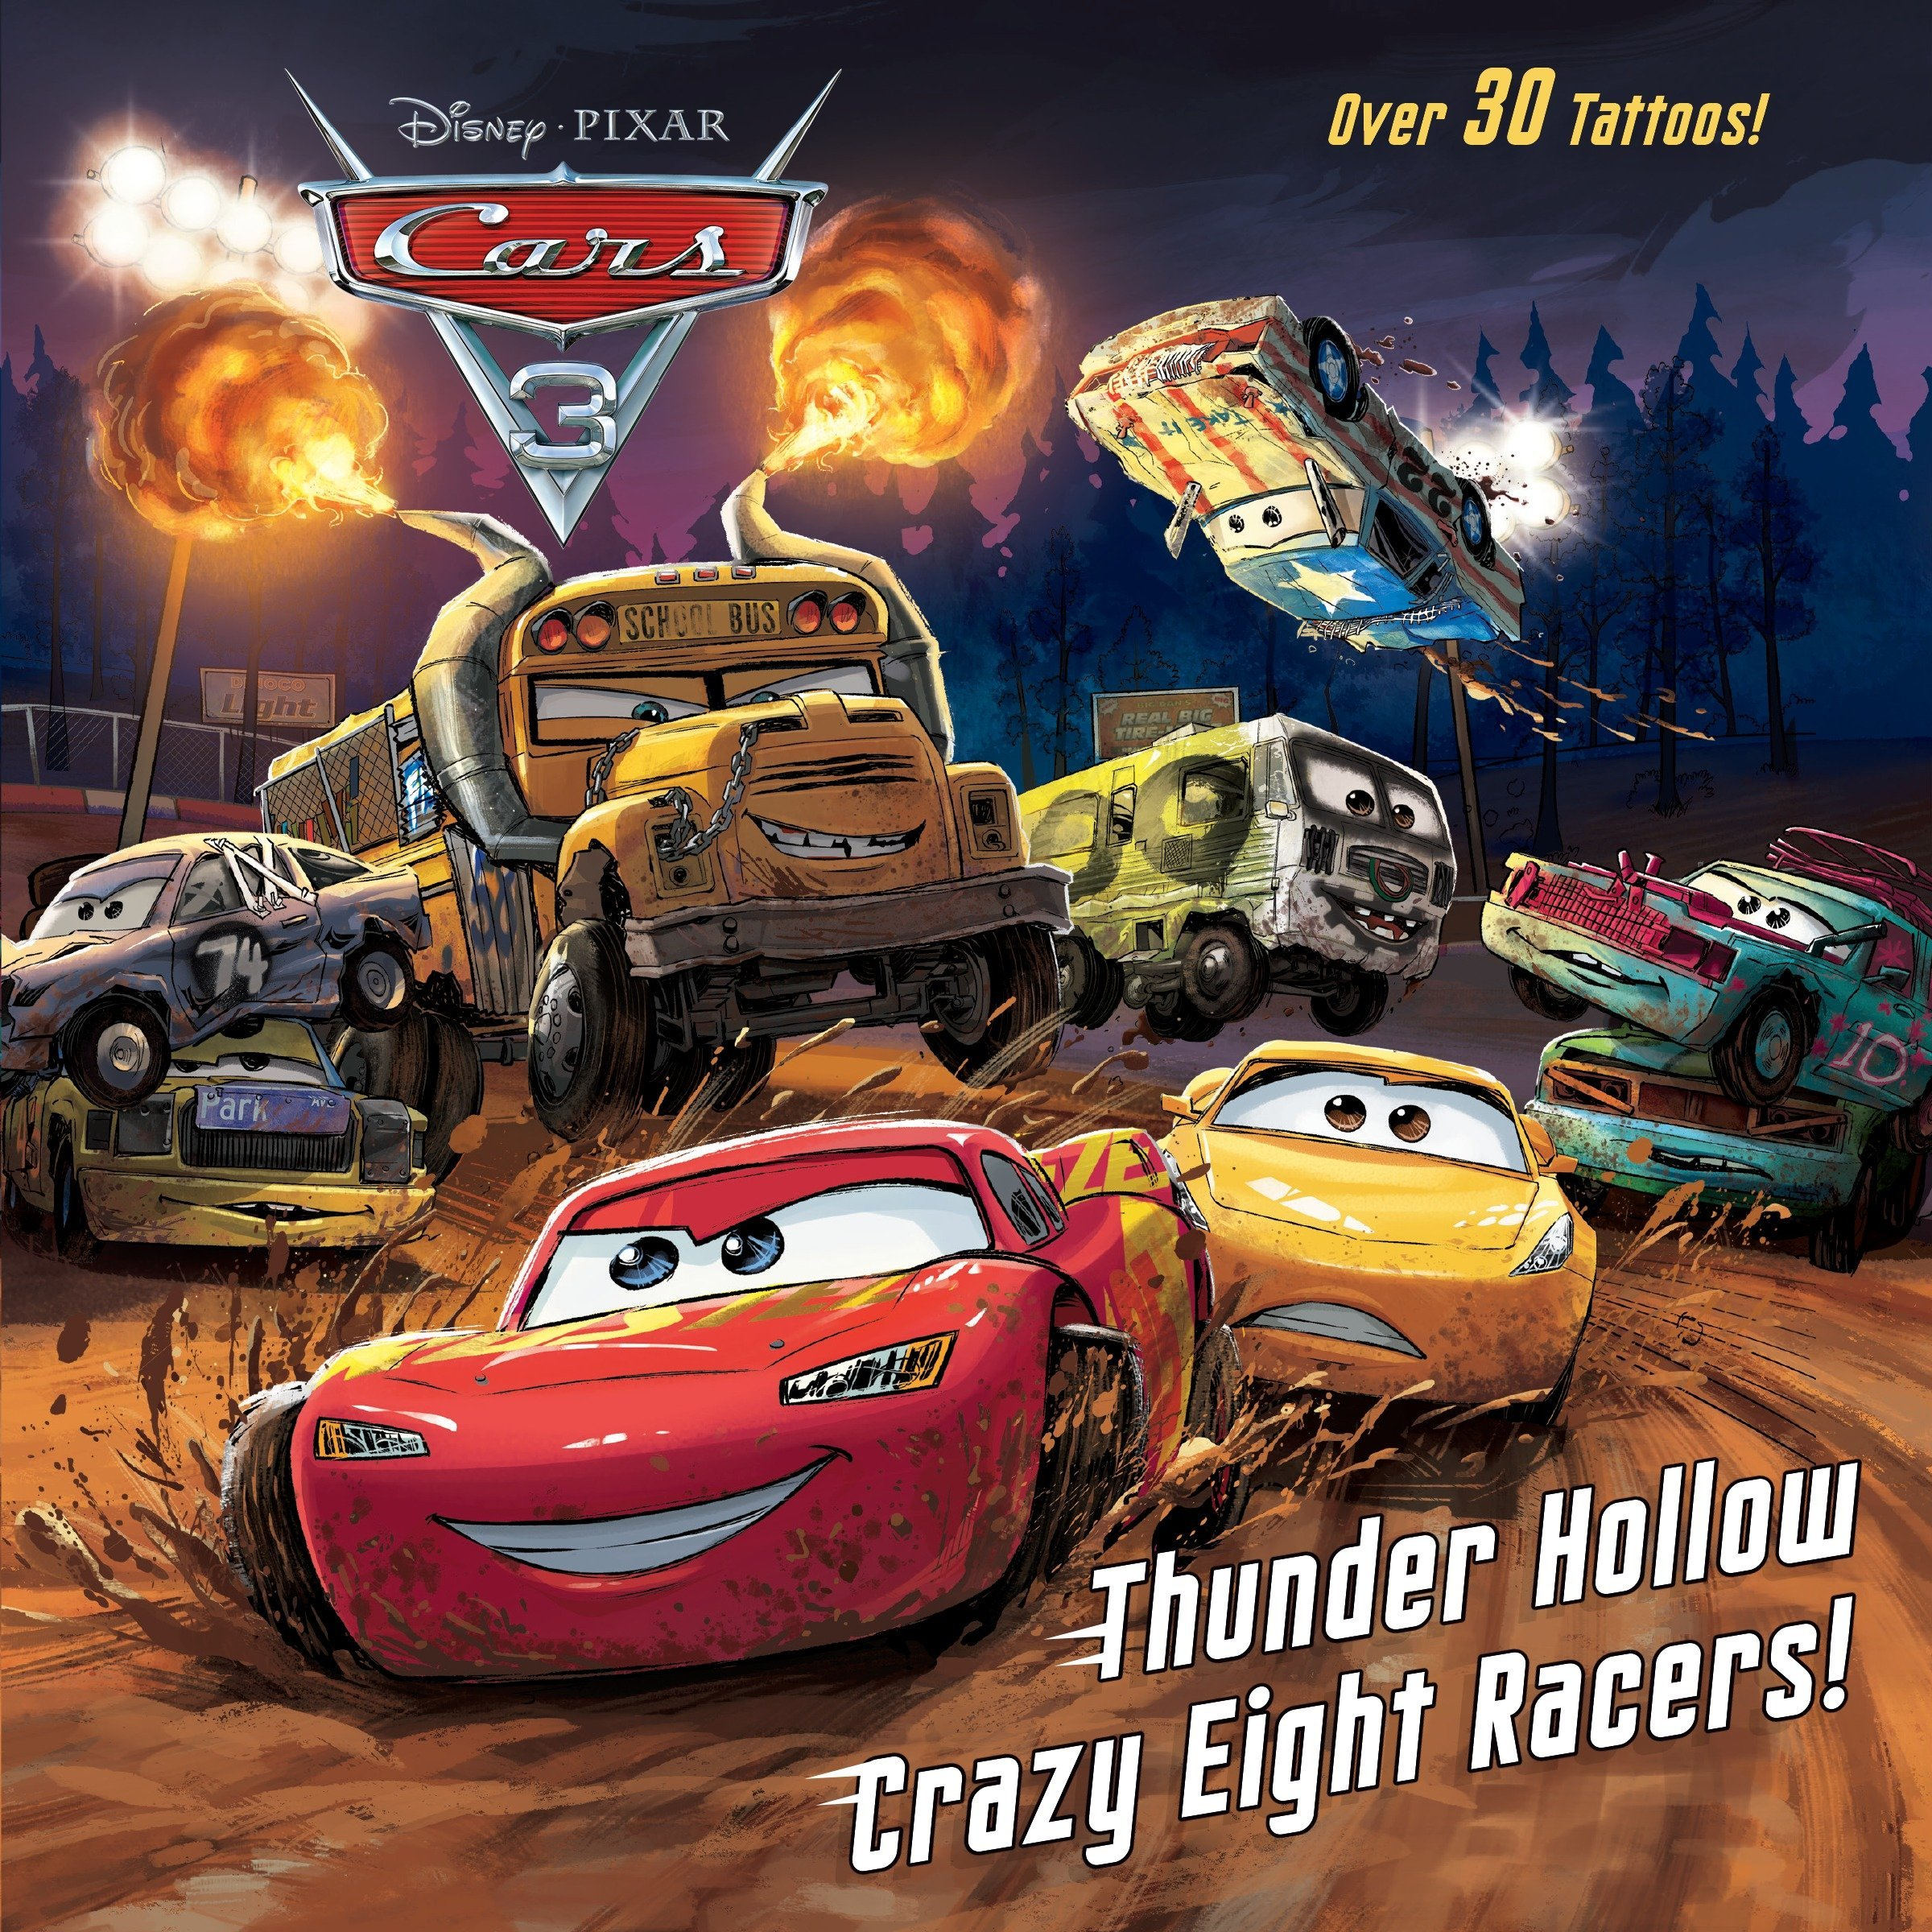 Thunder Hollow Crazy Eight Racers! (Disney/Pixar Cars 3) (Pictureback(R)) pdf